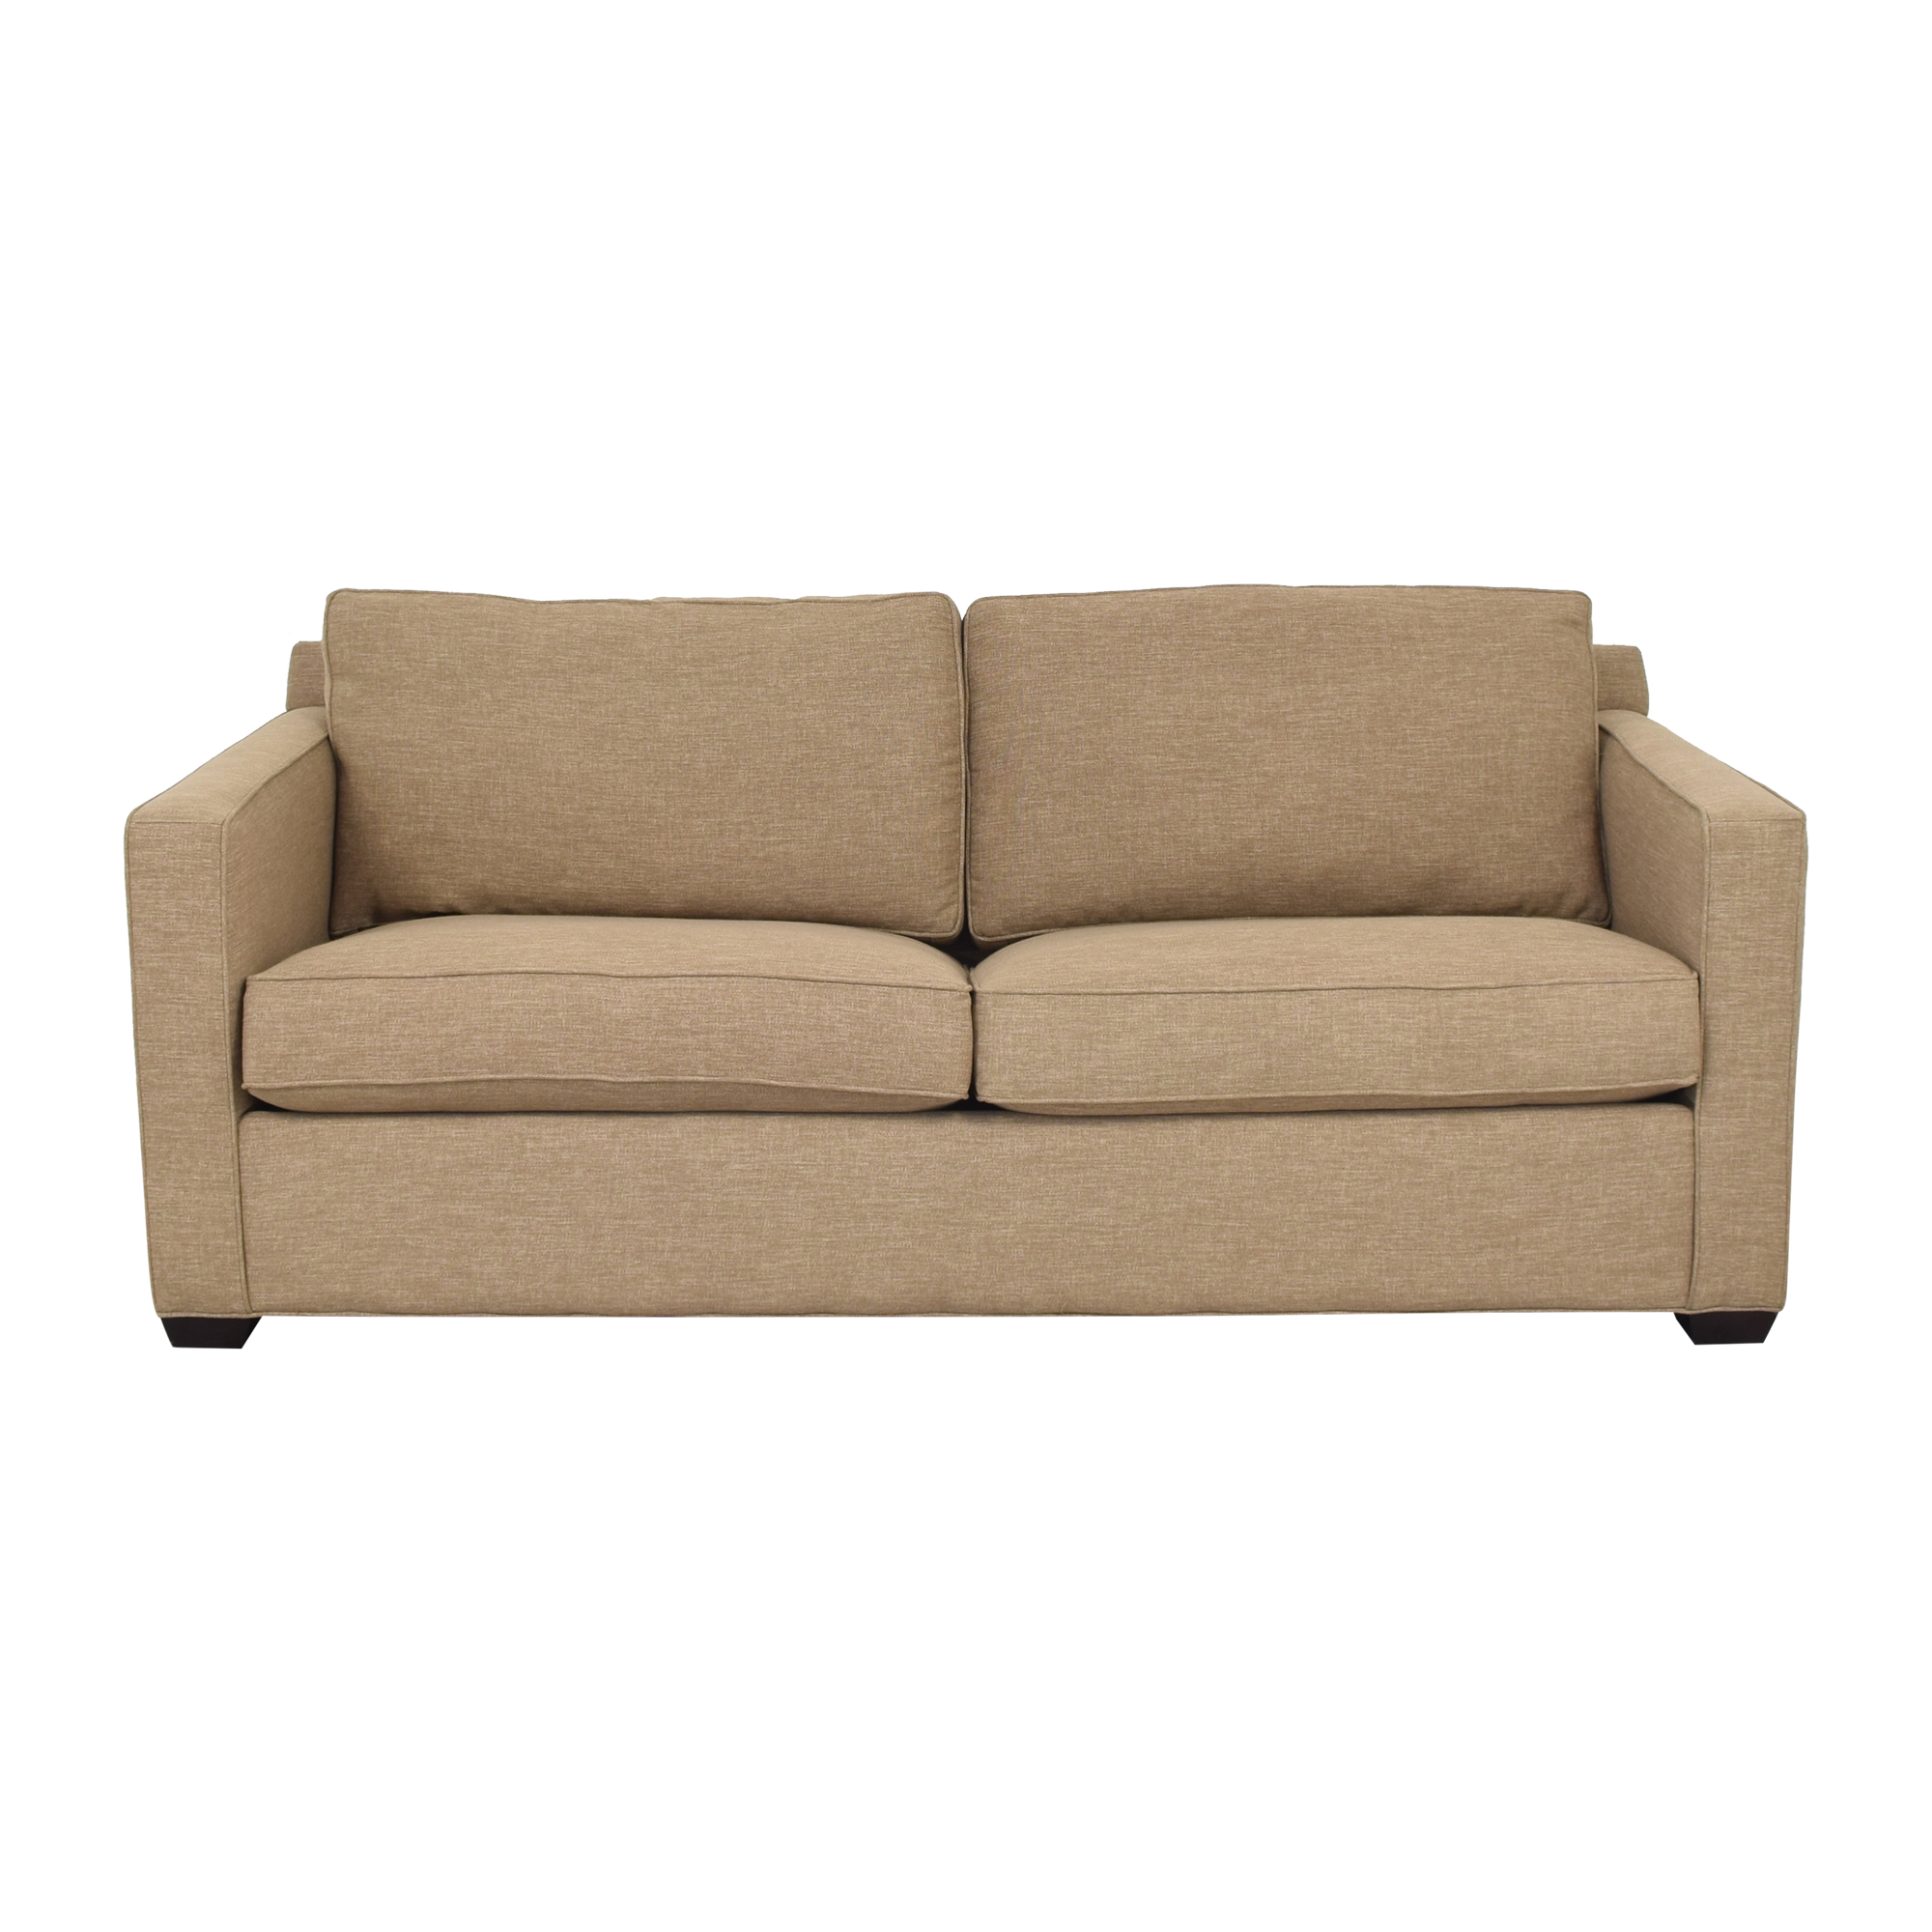 Crate & Barrel Crate & Barrel Davis Full Sleeper Sofa